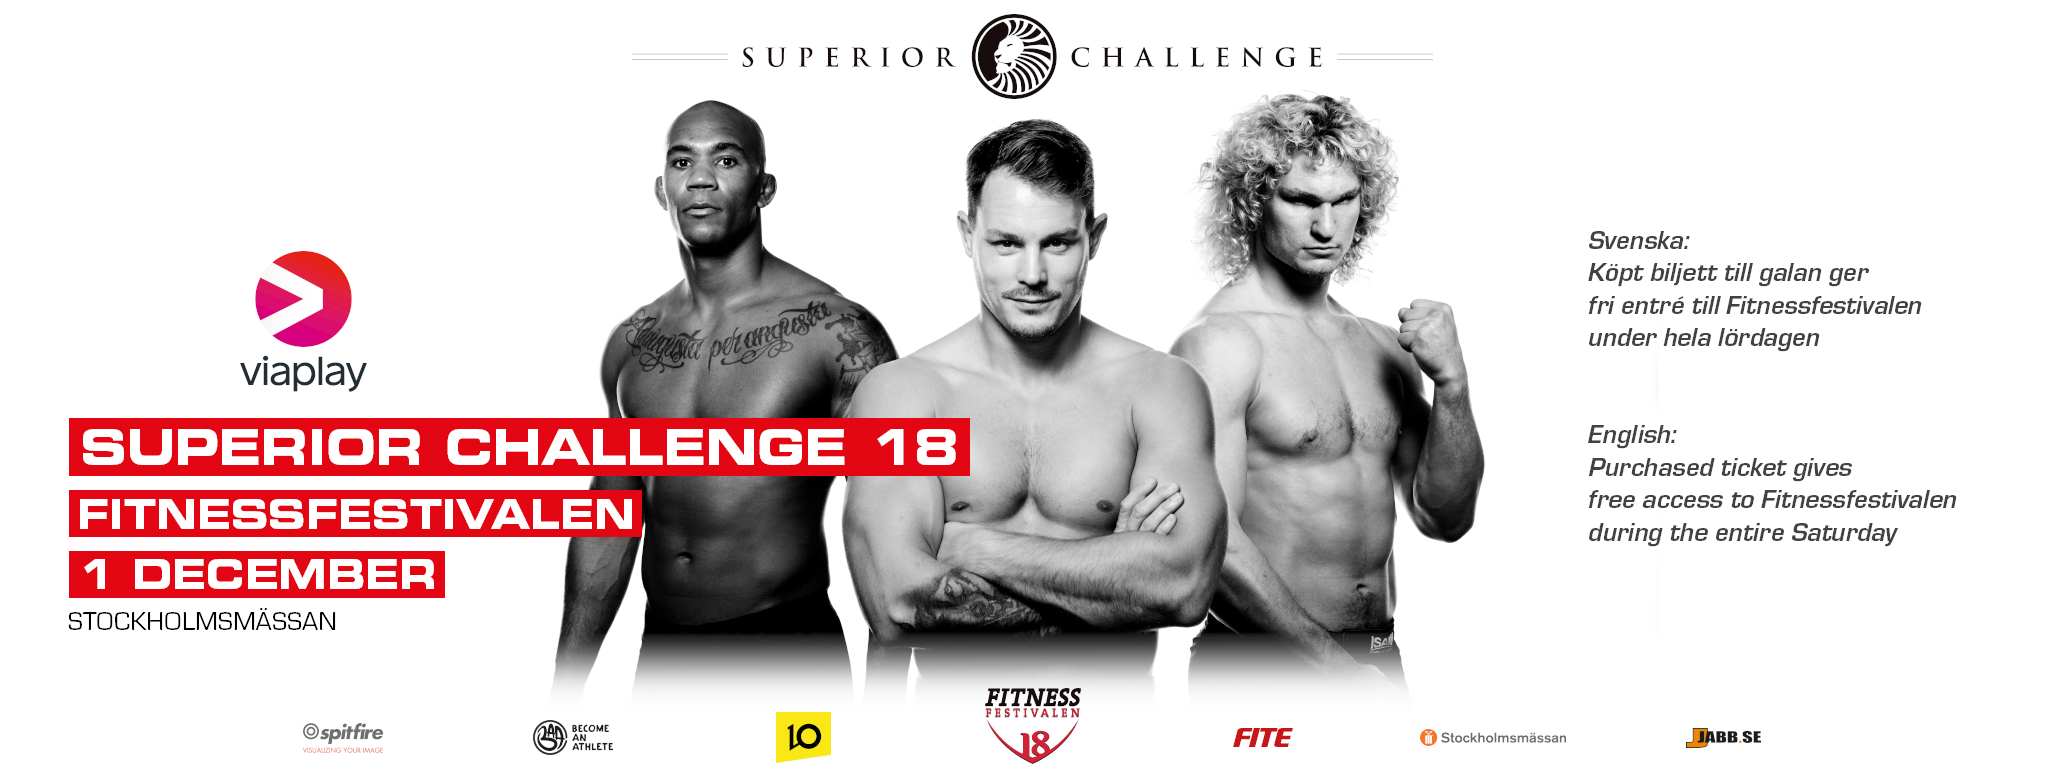 Superior Challenge 18 - December 1 (OFFICIAL DISCUSSION) Promo-superiuor-challenge-18-fitnessfestivalen-scw-poster